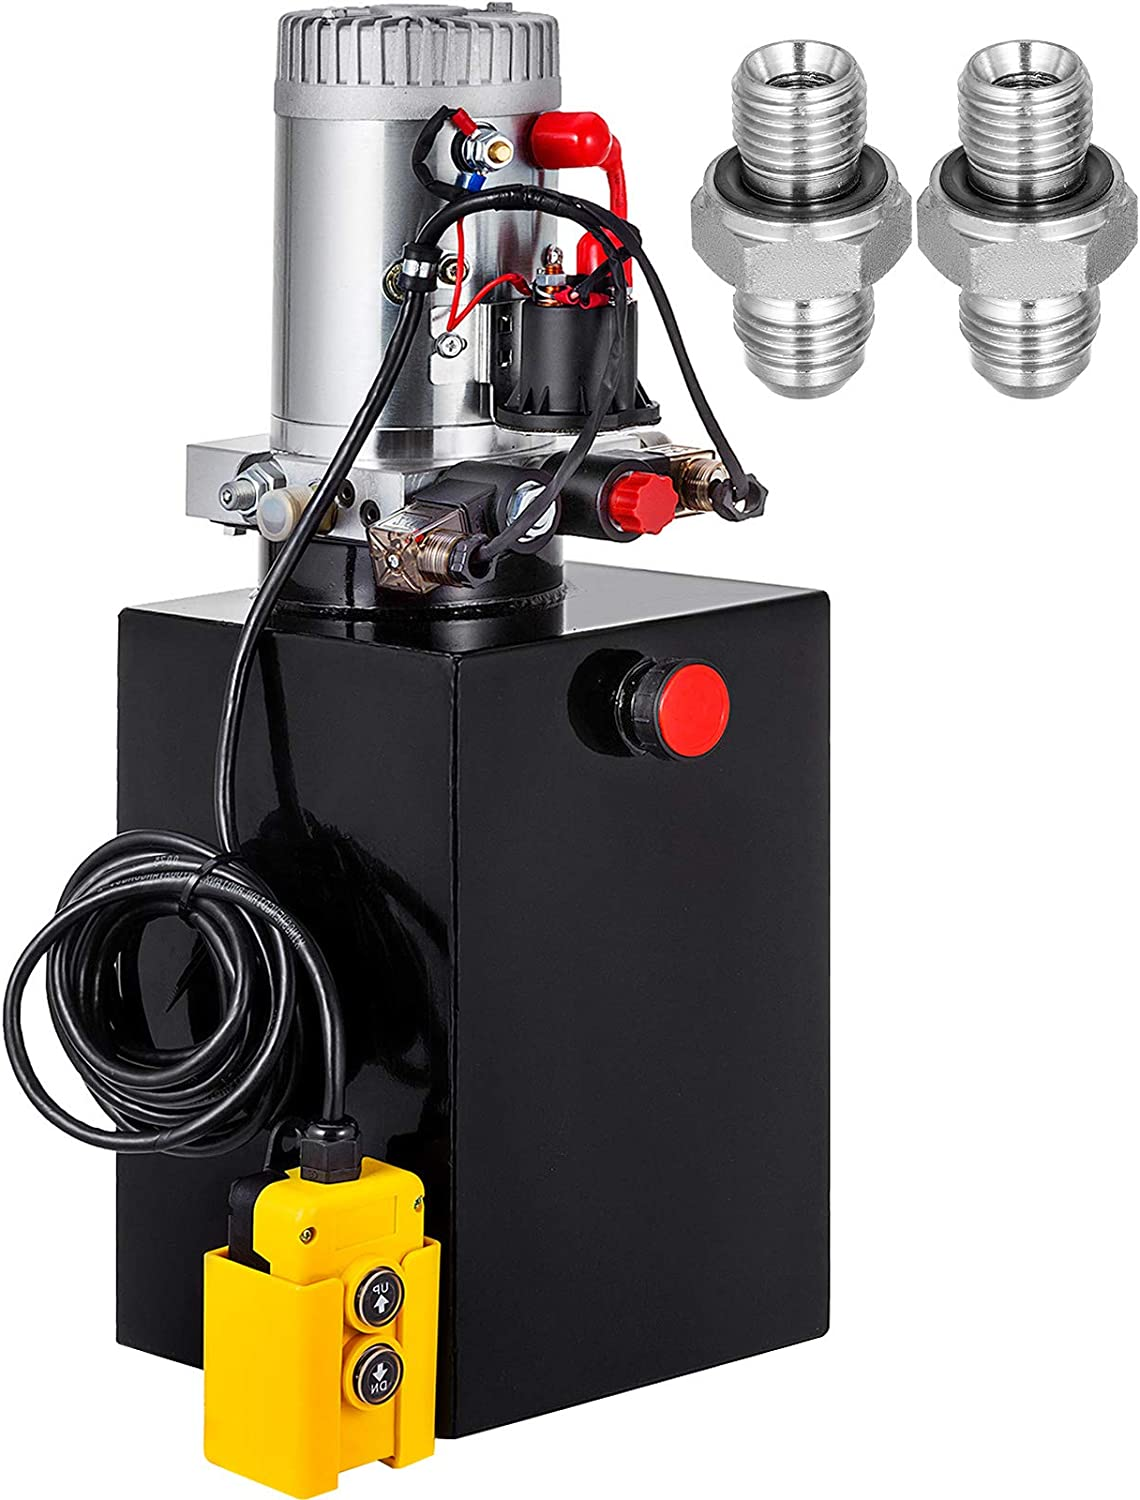 VEVOR Hydraulic Power Unit Be super welcome 12 Quart Double Pump Indianapolis Mall Acting